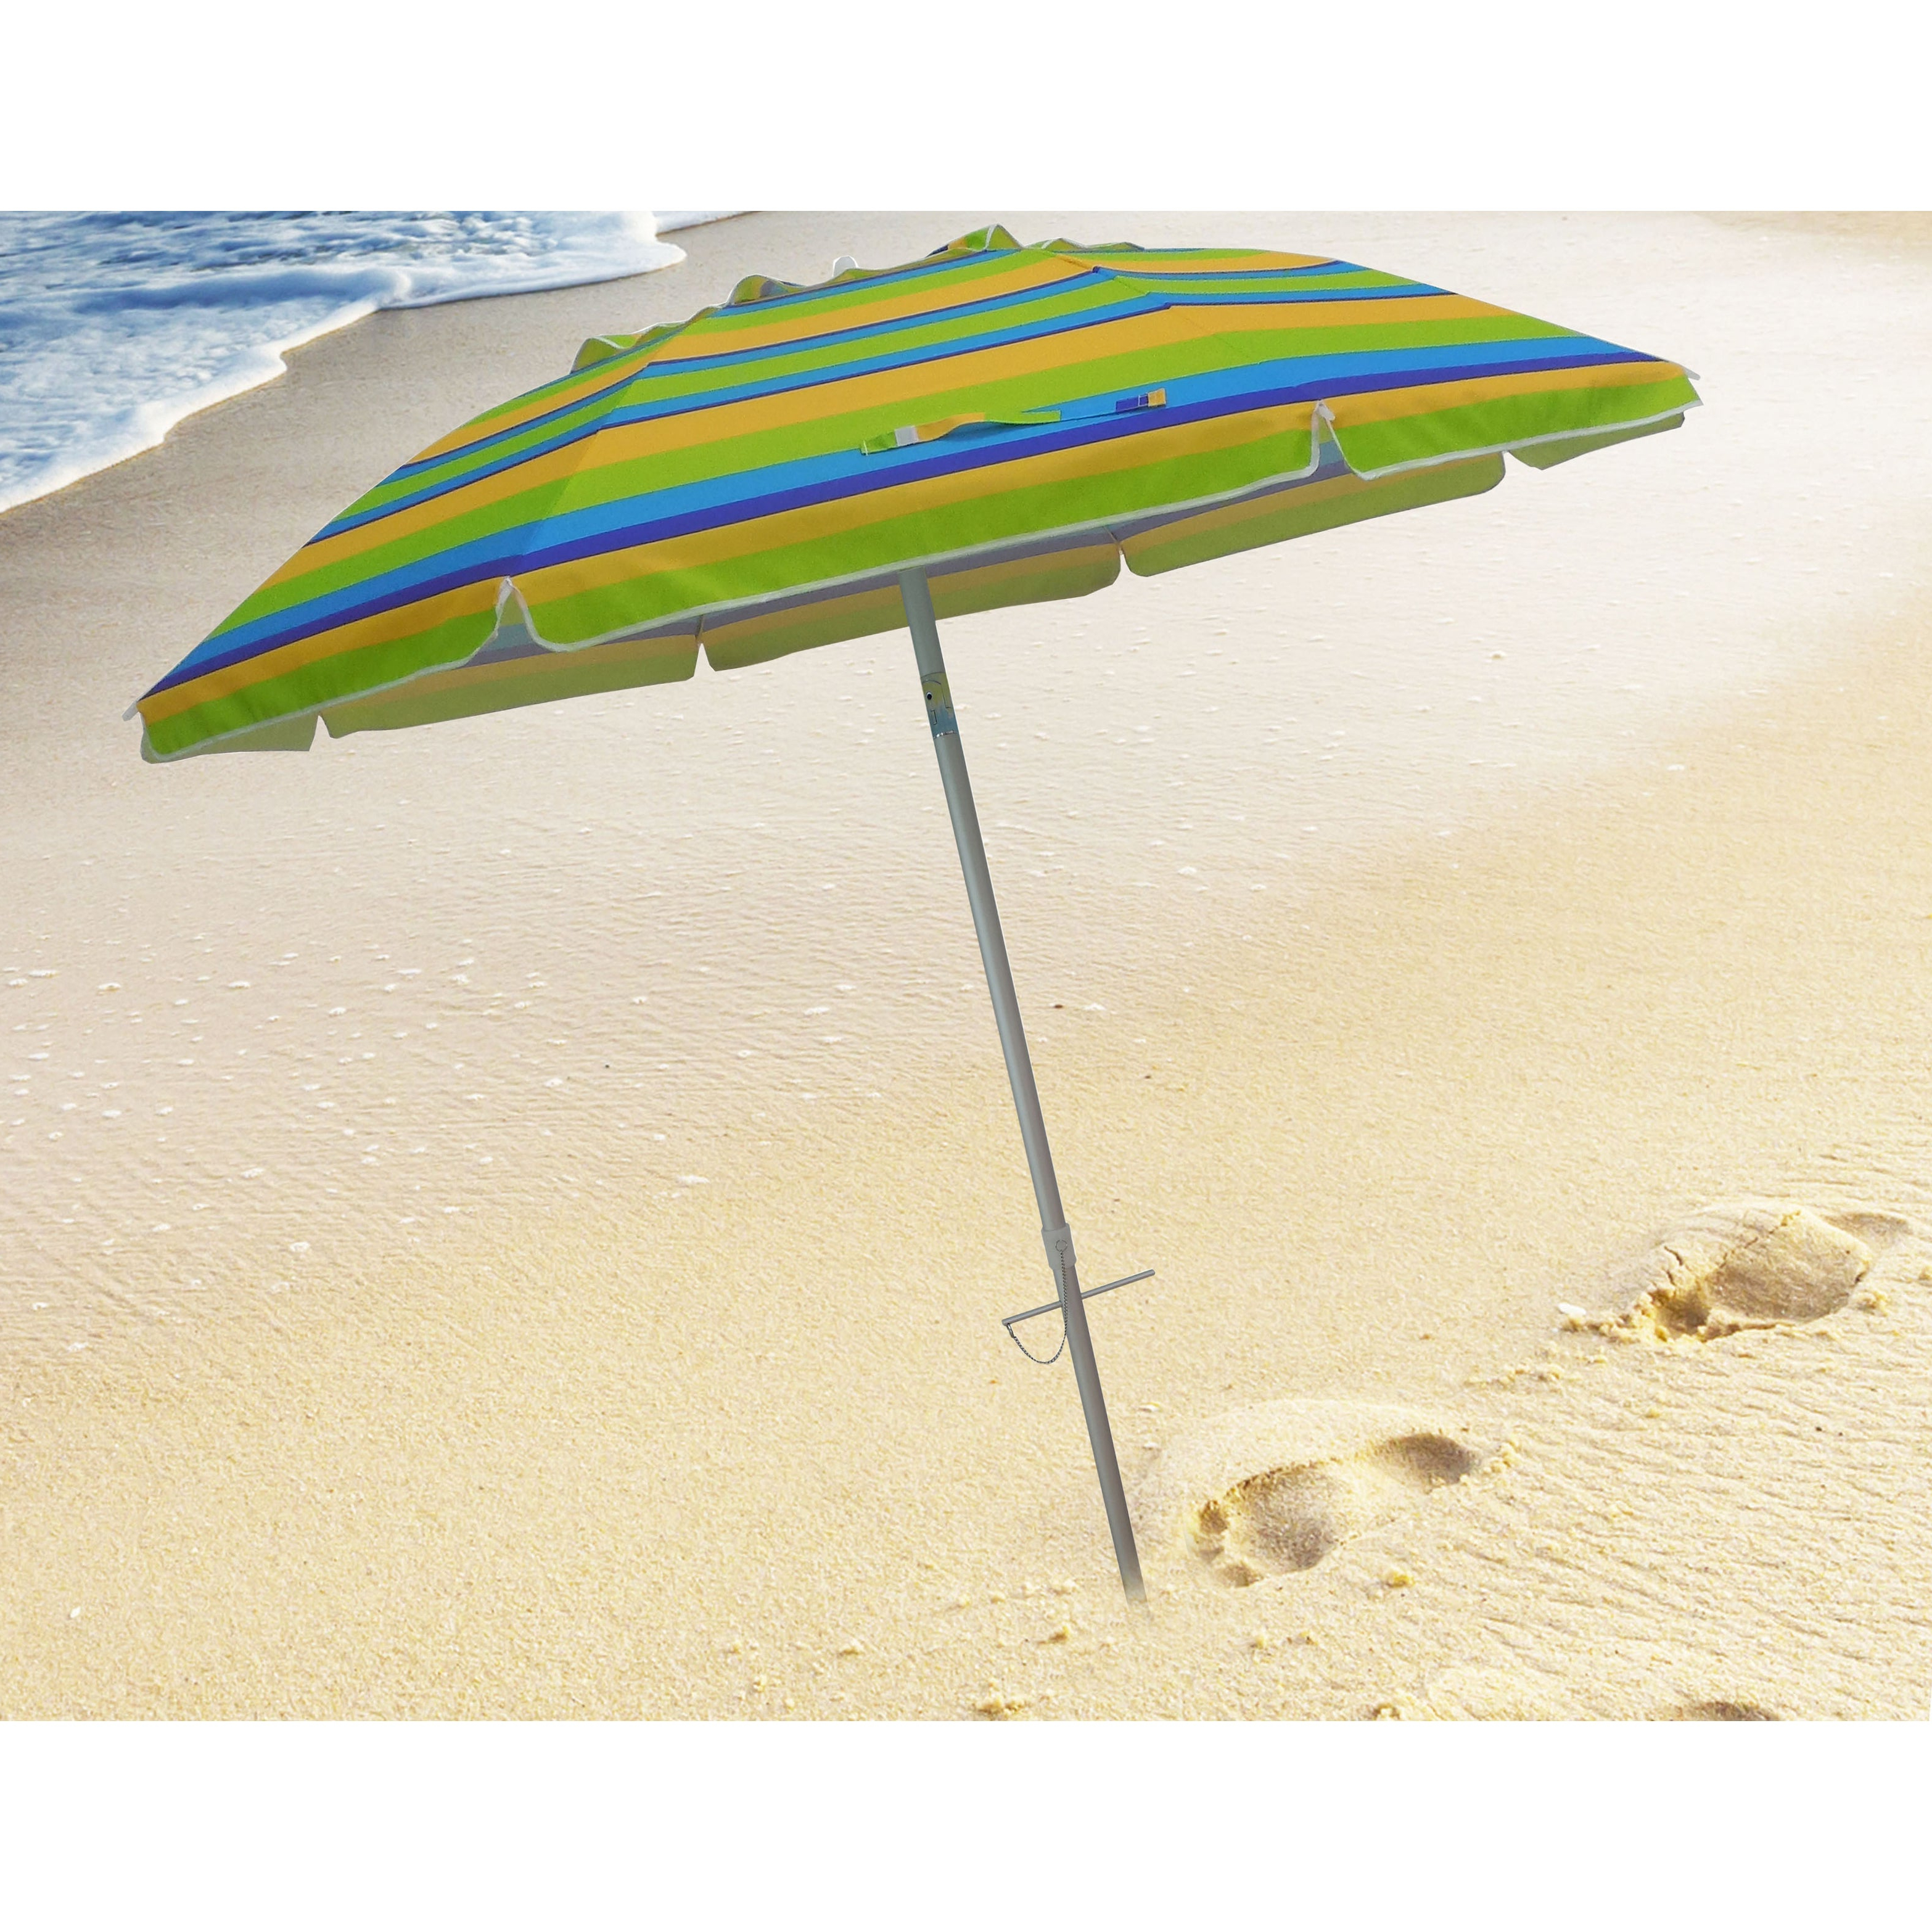 Preferred Margaritaville Green And Blue Striped Beach With Built In Sand Anchor Umbrellas For 7 Foot Stripe Beach Umbrellas With Tilt And Travel Bag (View 13 of 20)